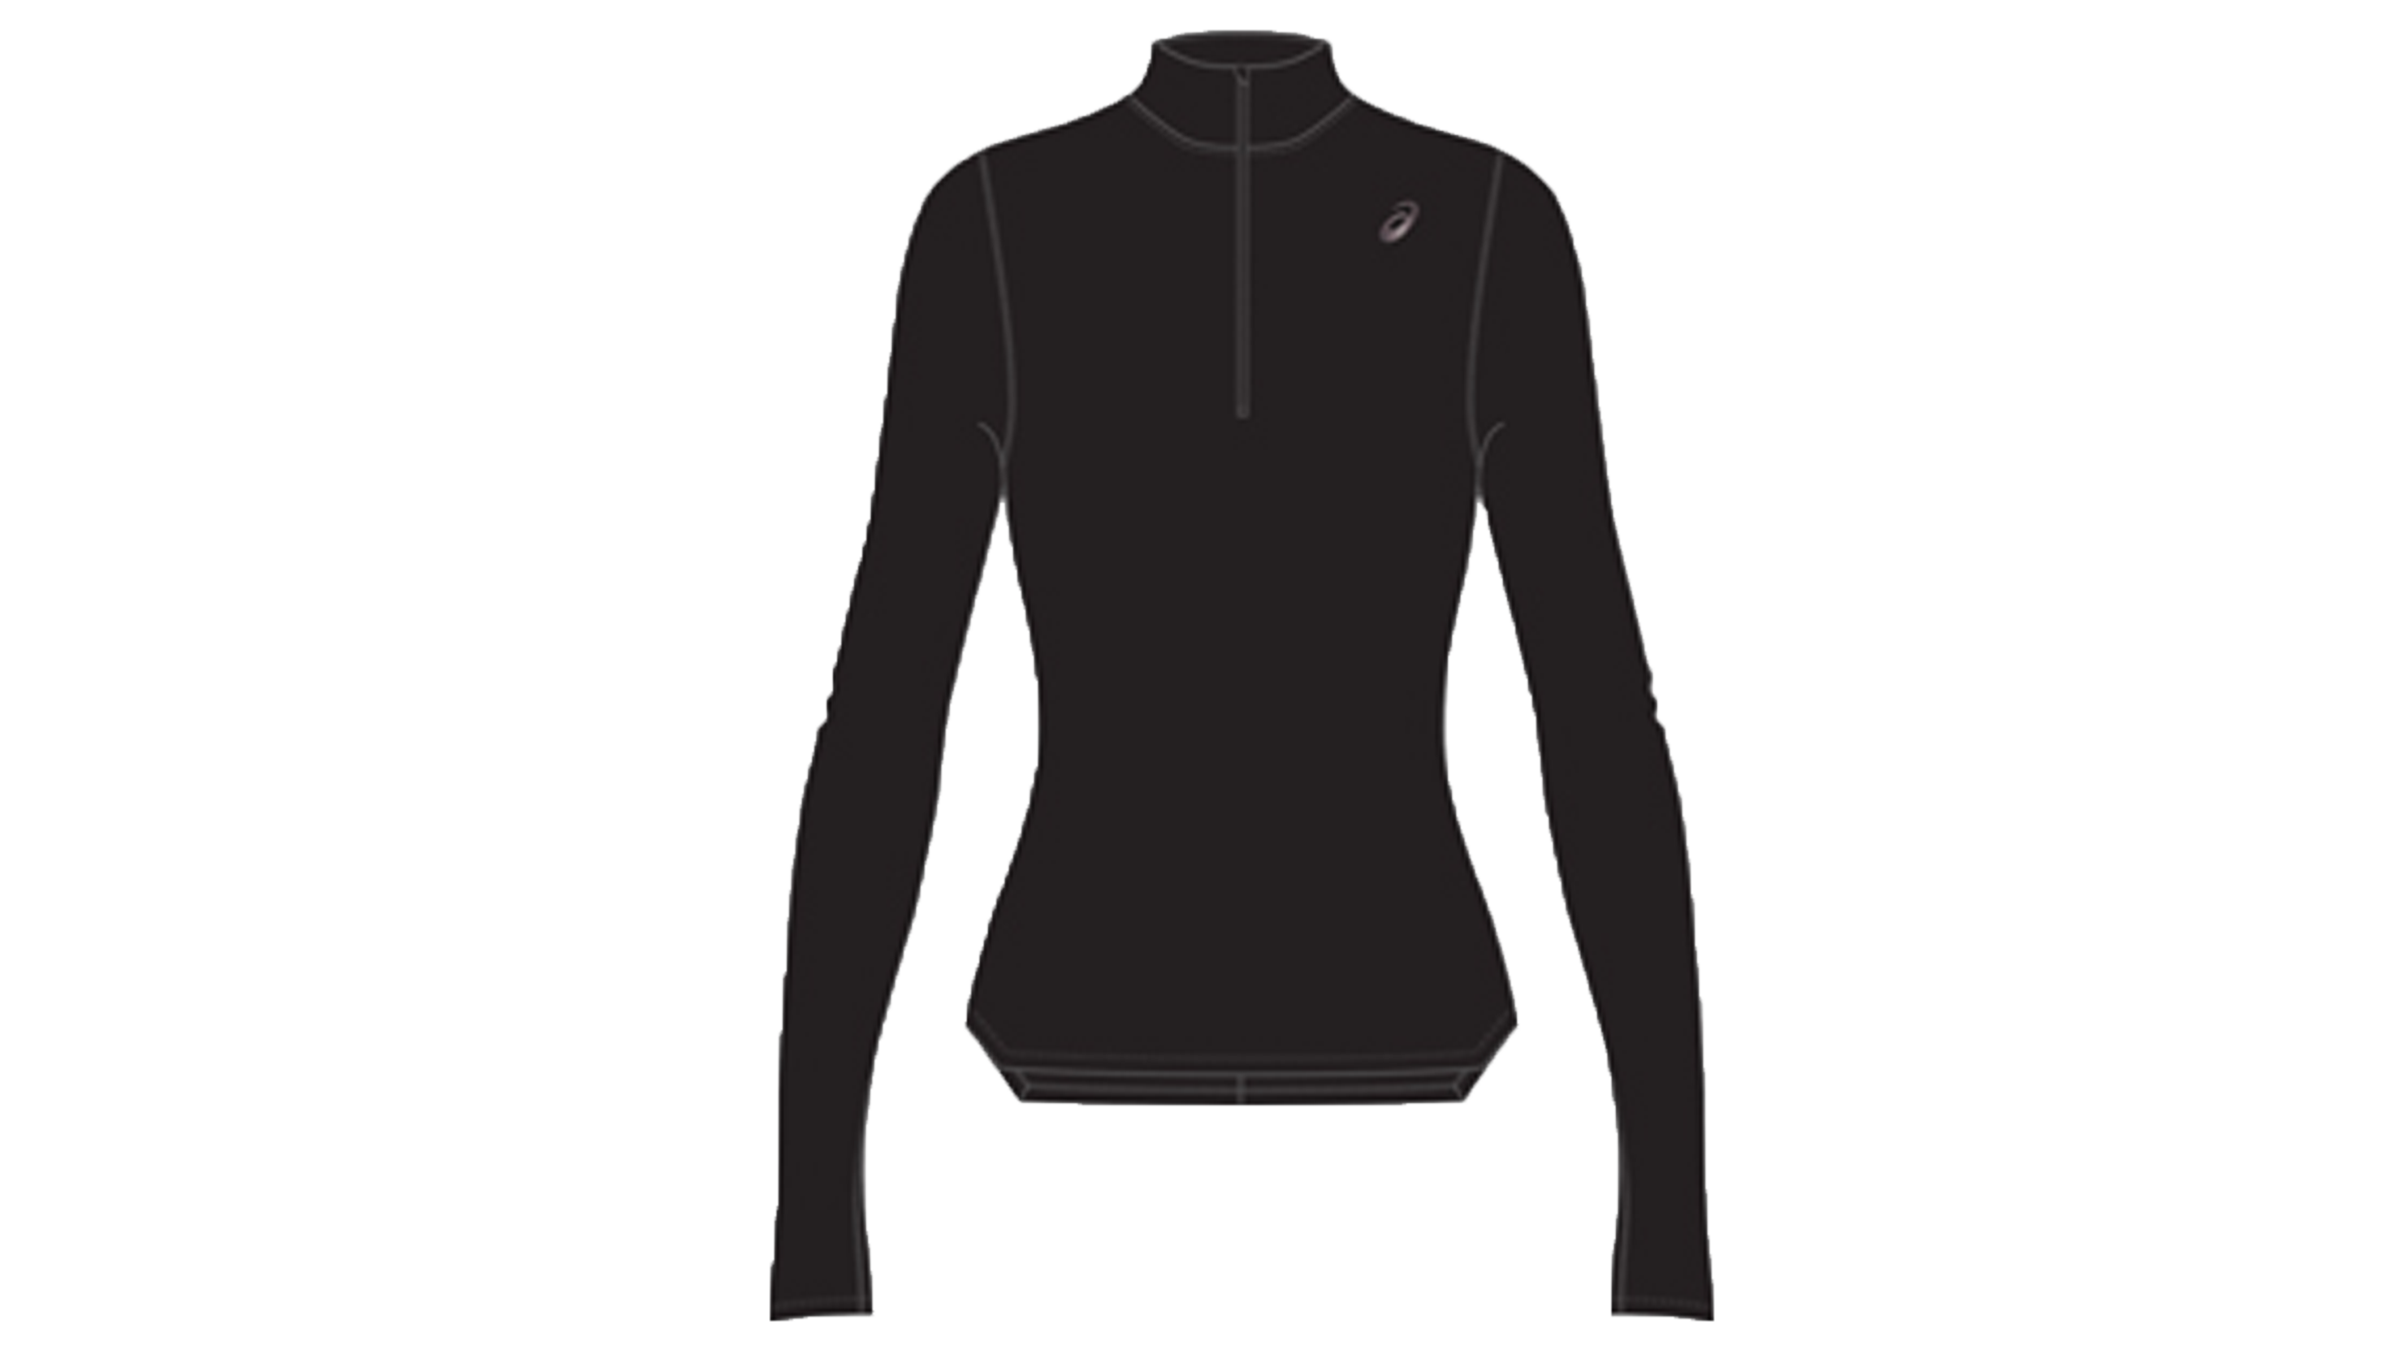 57e63013b27 Asics Women's Silver LS 1/2 zip winter top [performance black ...